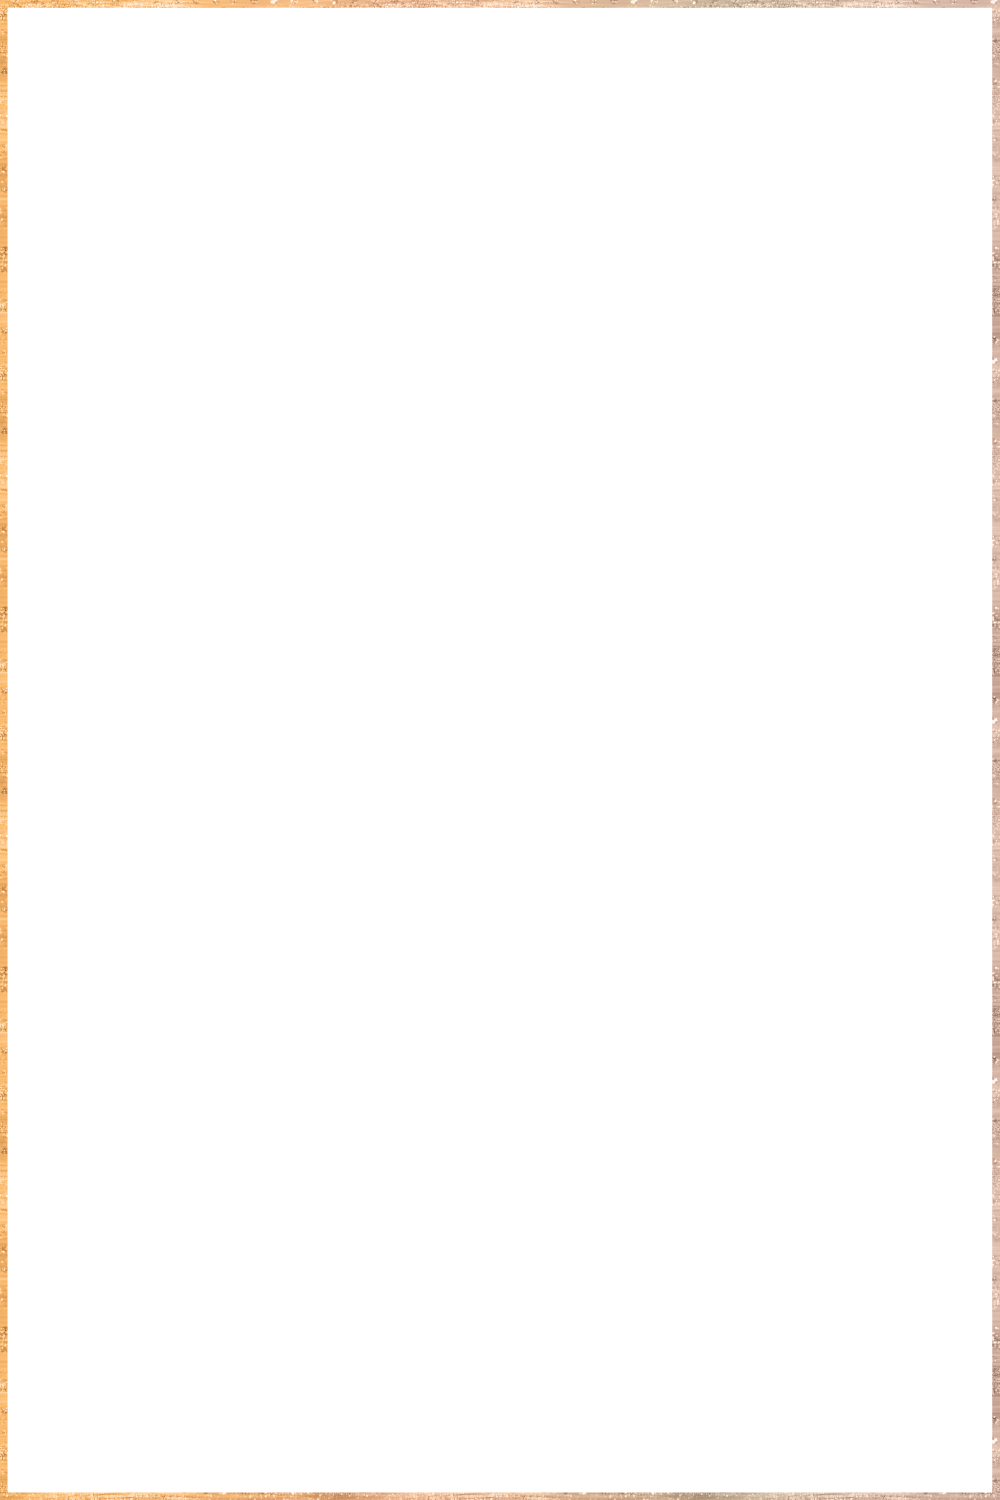 Frames_Rectangle (thin)_72 dpi.png